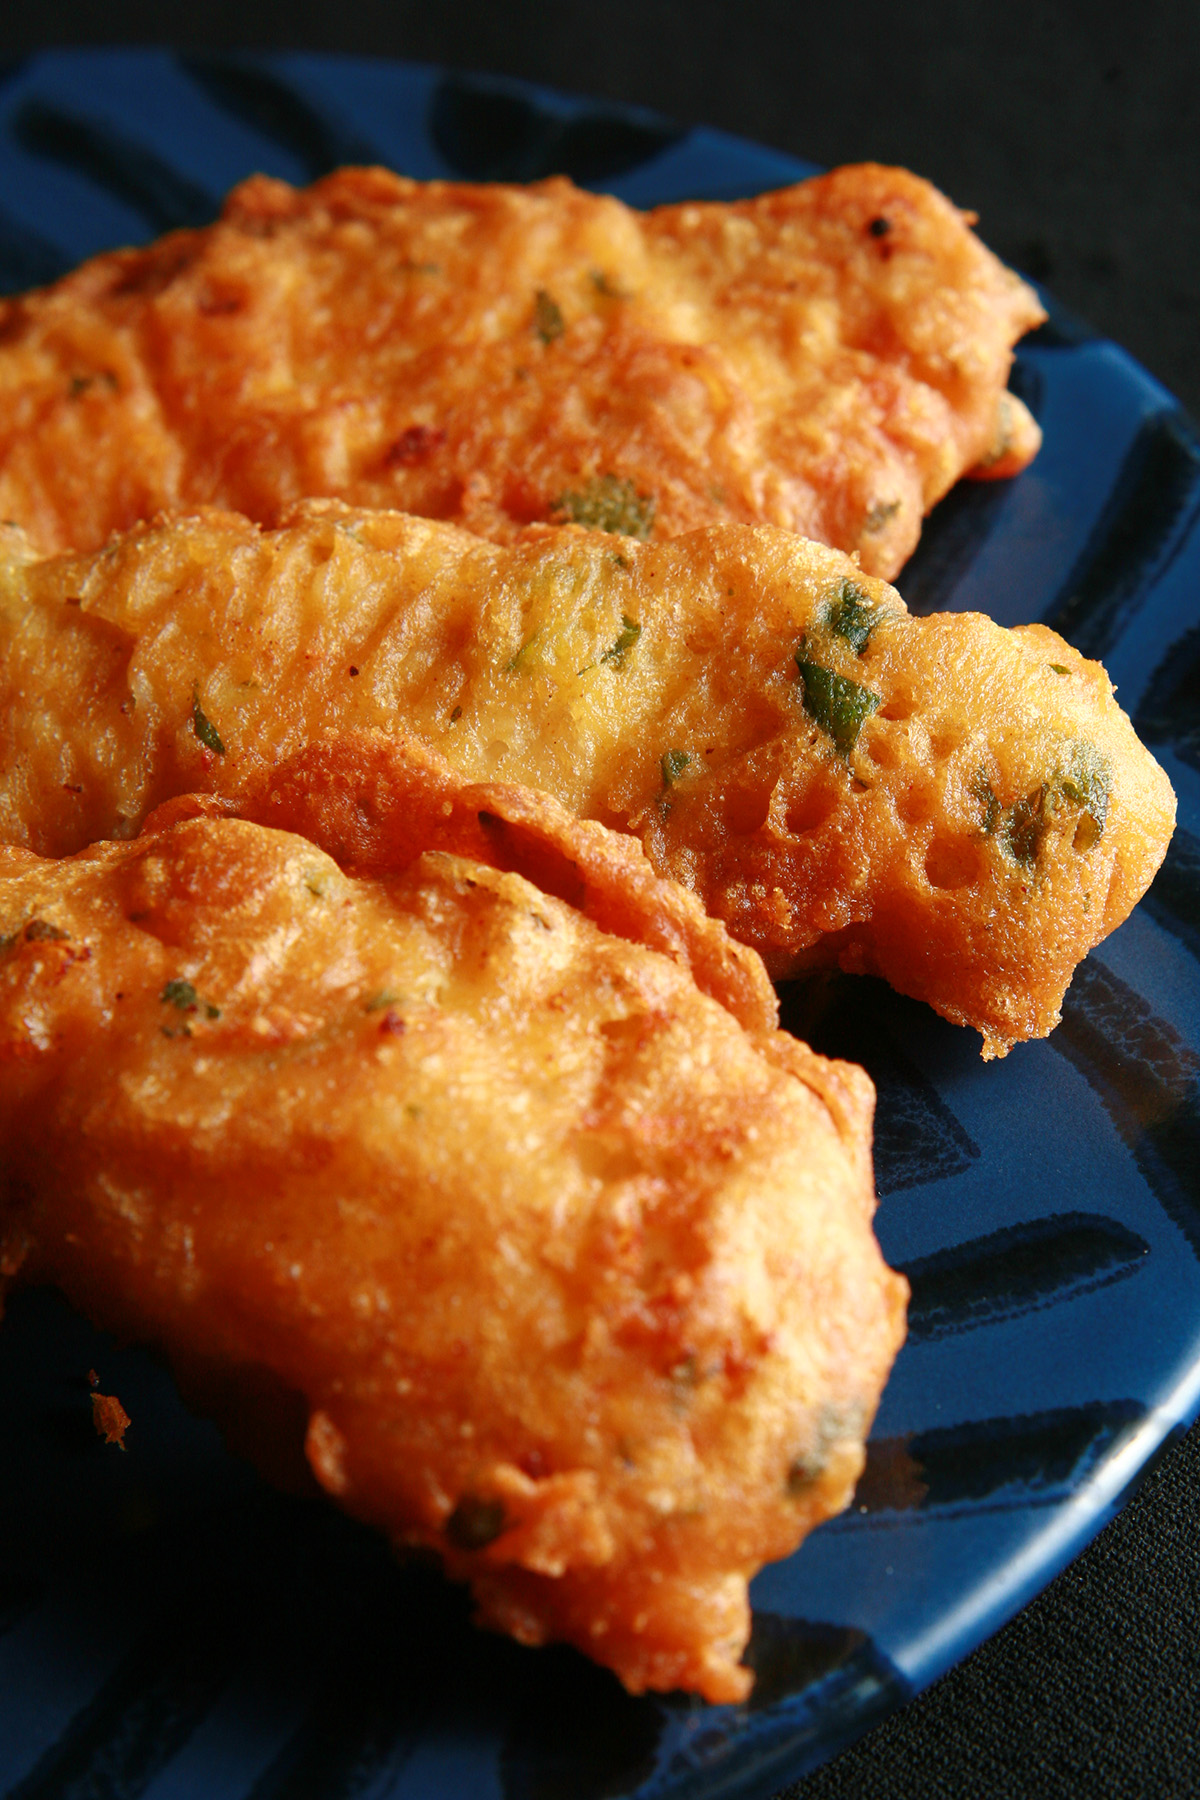 Several strips of gluten-free chicken pakora on a blue plate. They are golden deep fried, with flecks of green cilantro.